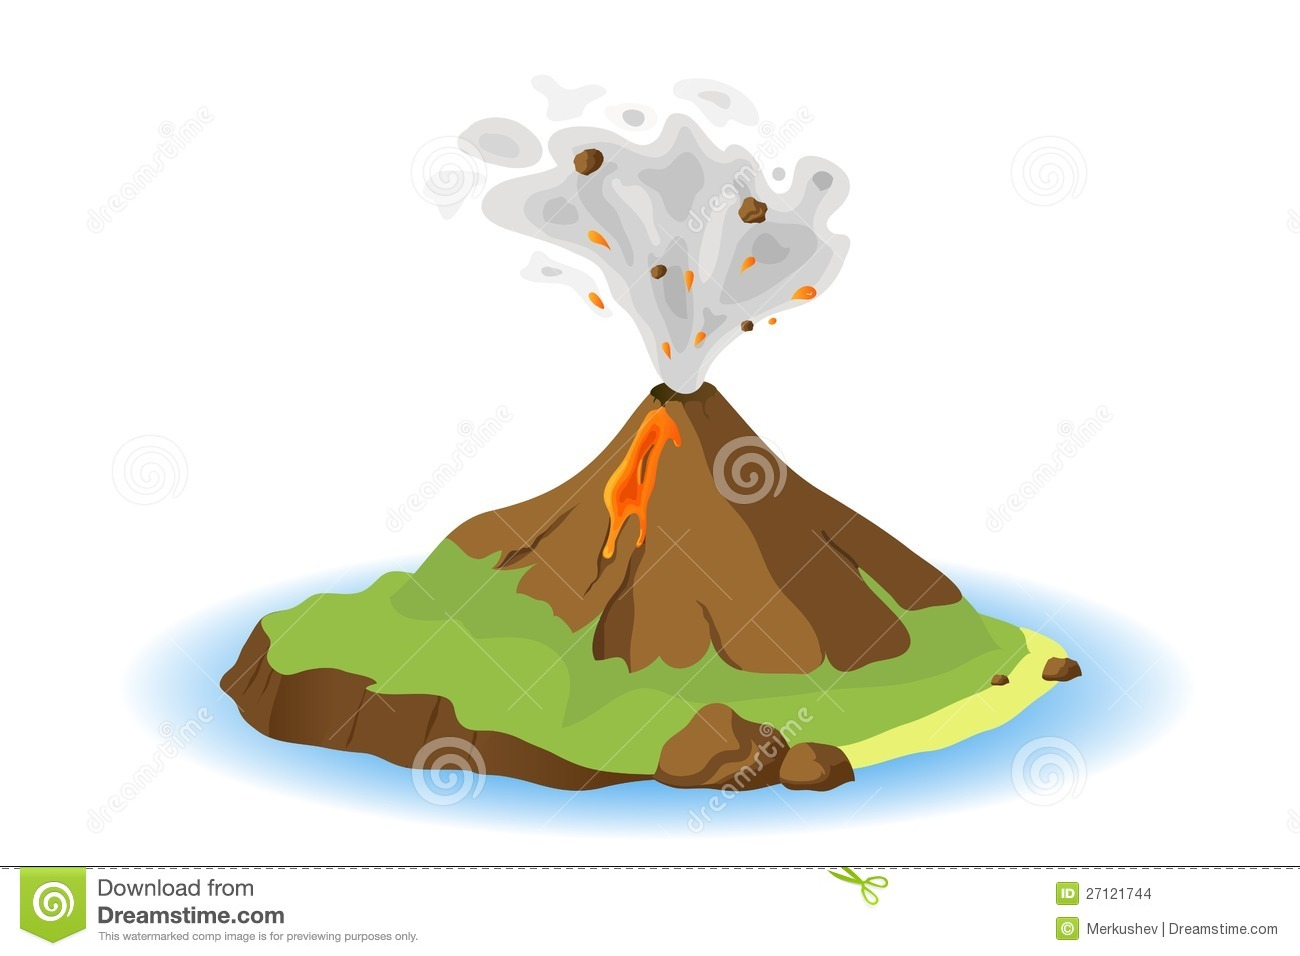 Volcano erupting on island, vector illustration.